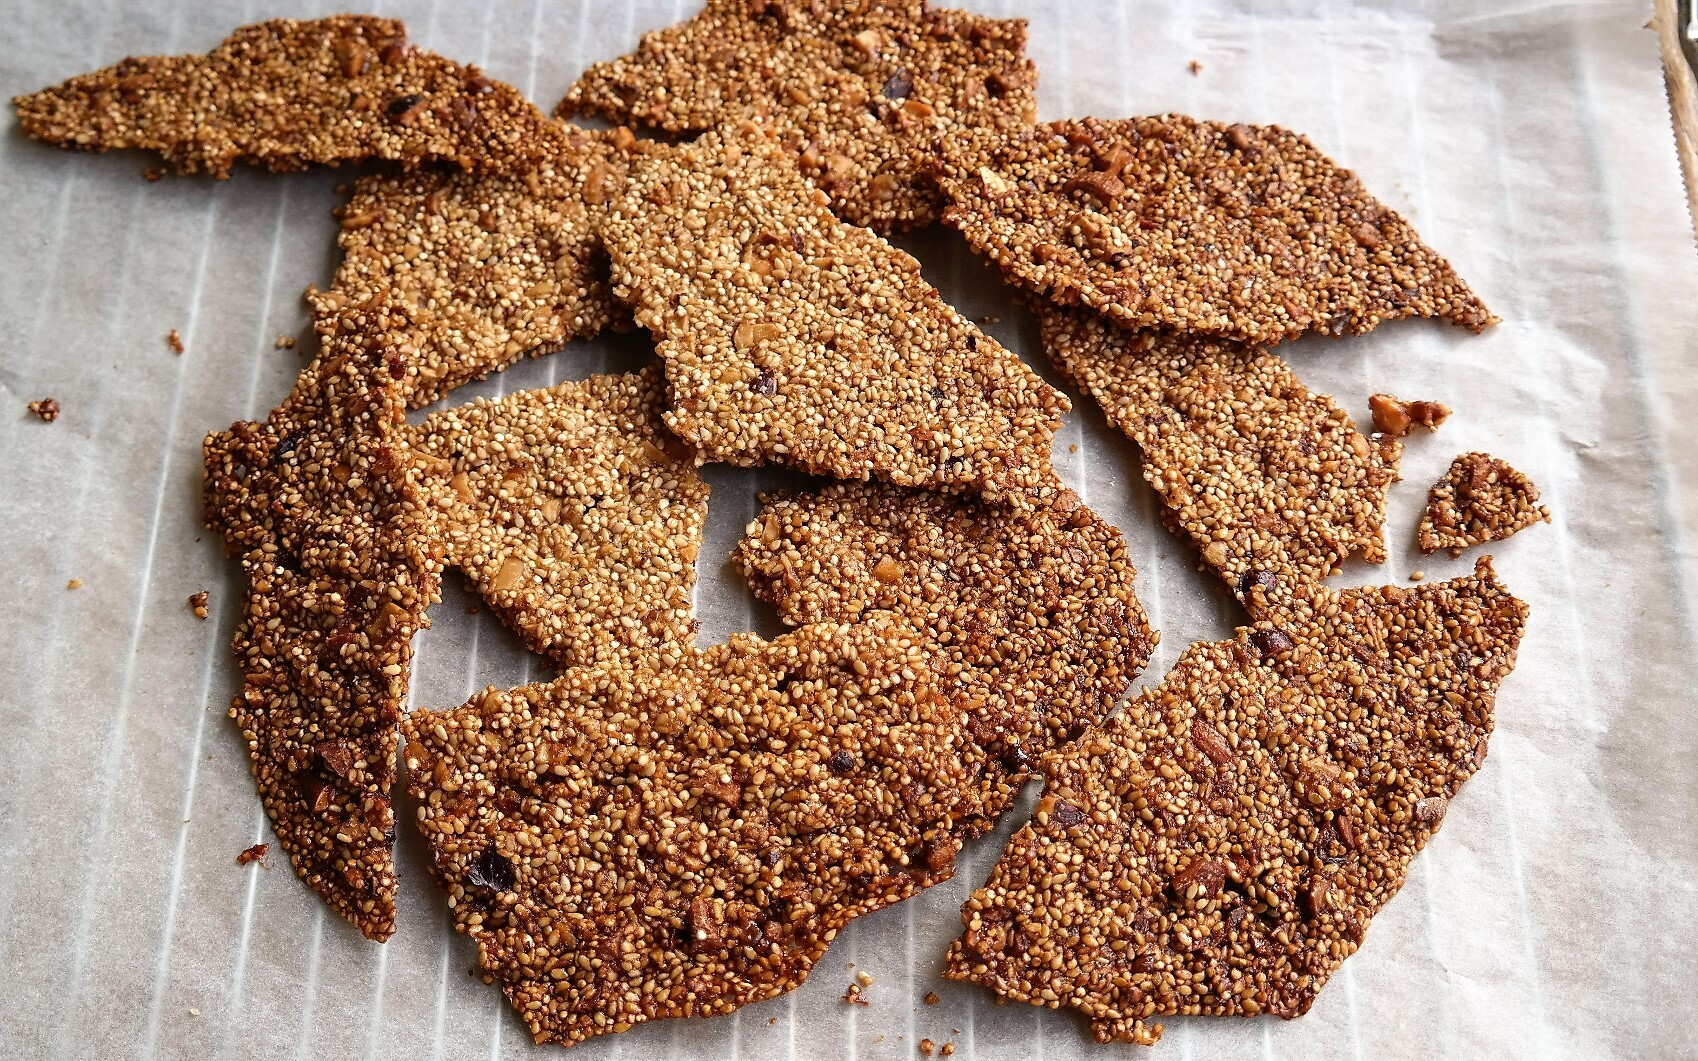 sesam quinoa crackers